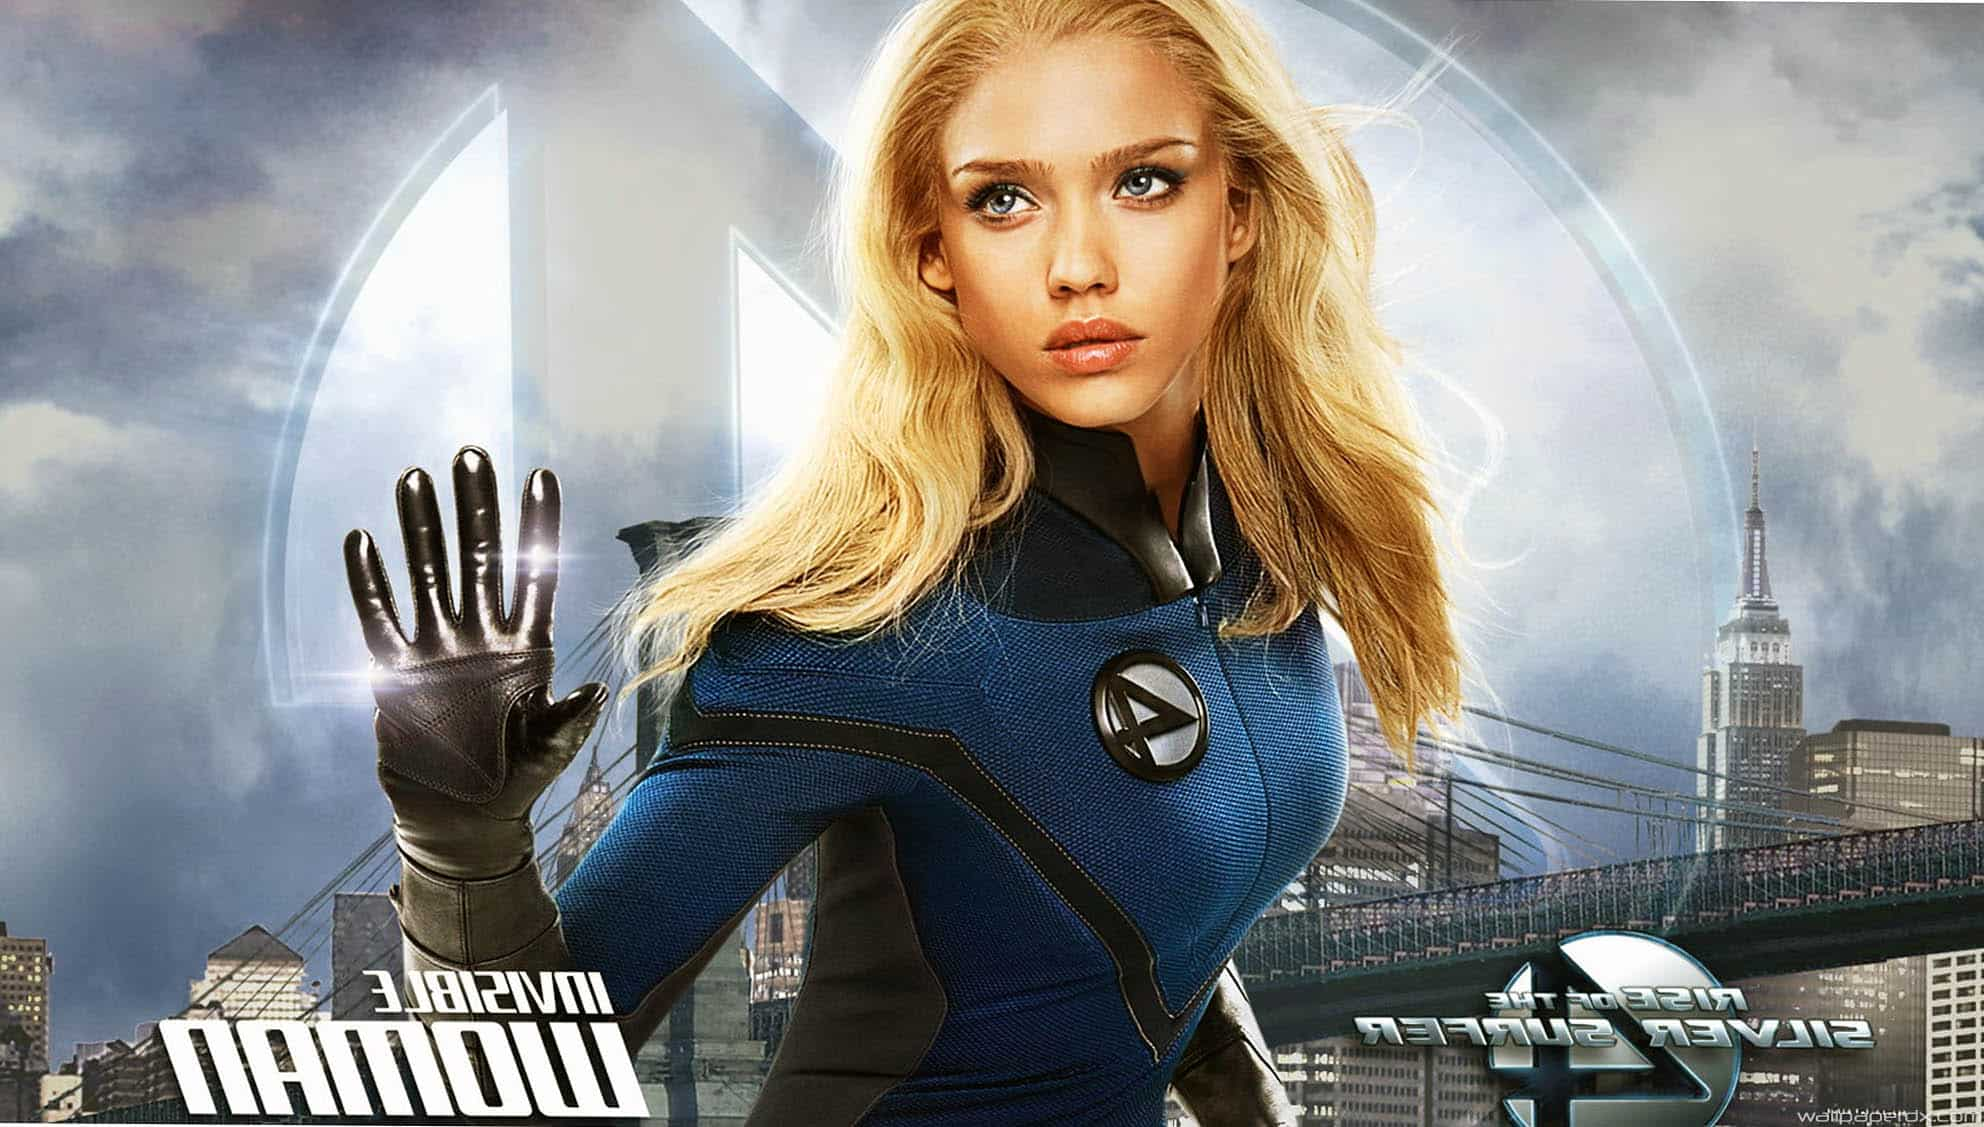 Fantastic 4 rise of the silver surfer invisible woman - Femme invisible 4 fantastiques ...